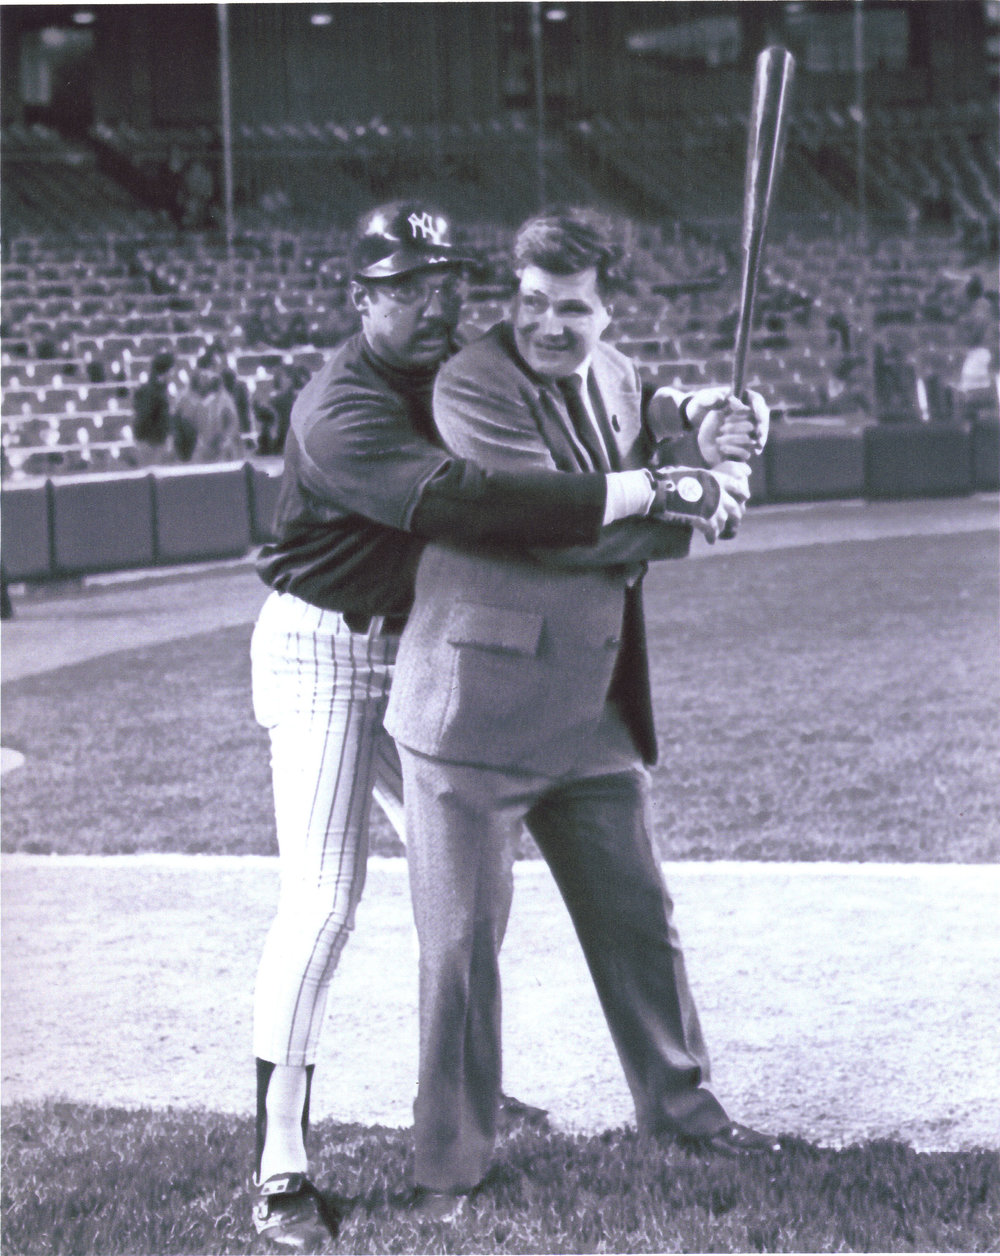 Ed and Reggie at Bat.jpg